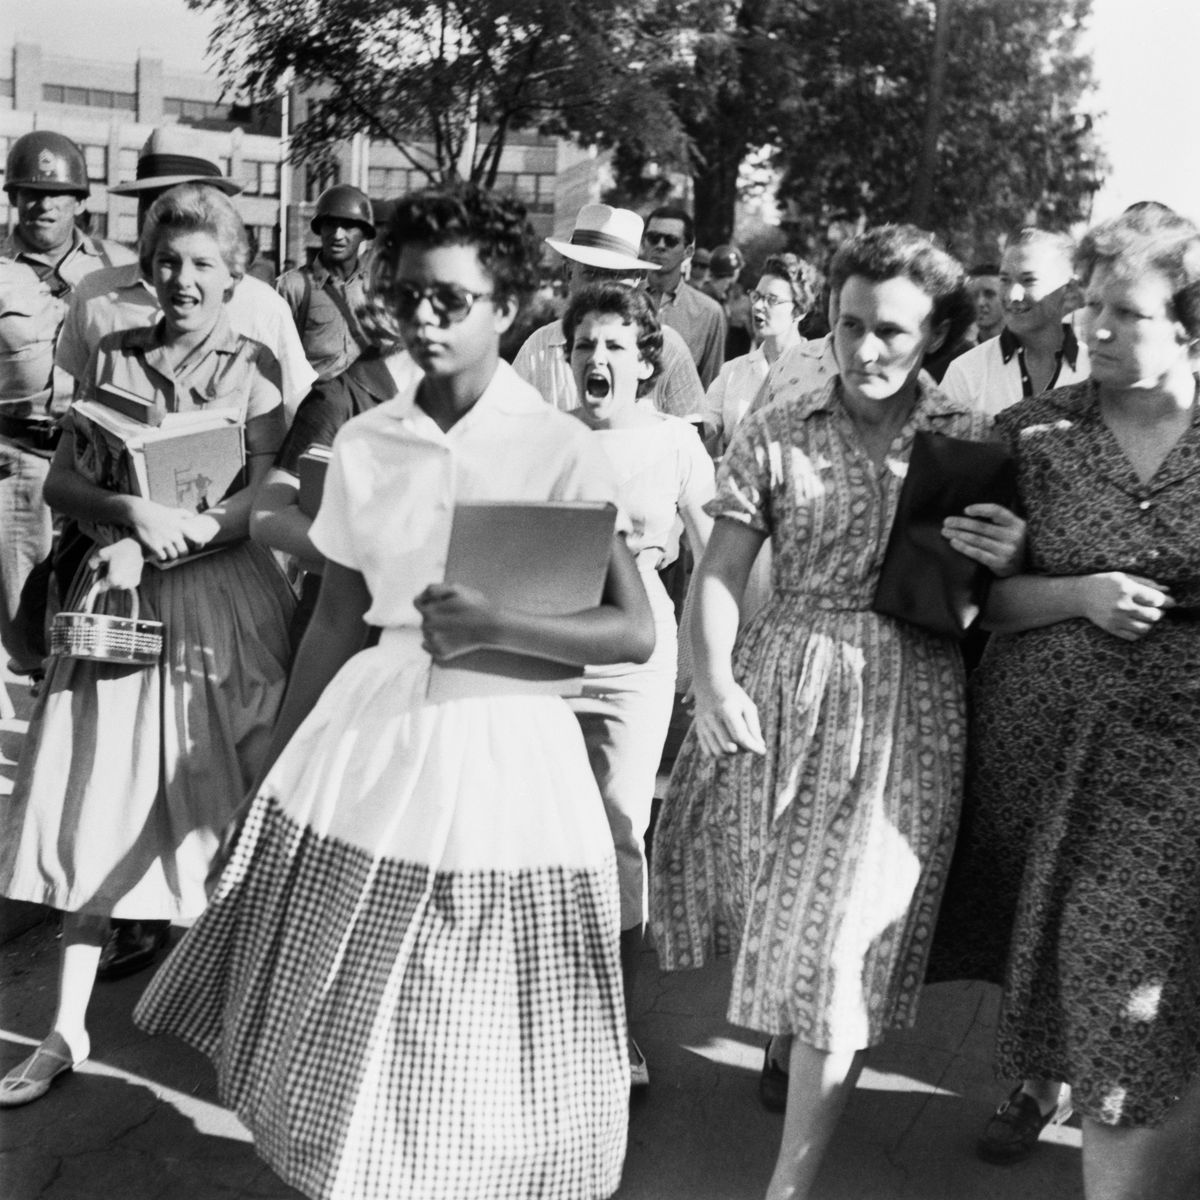 A Black female student being shouted at by white people, circa 1957.